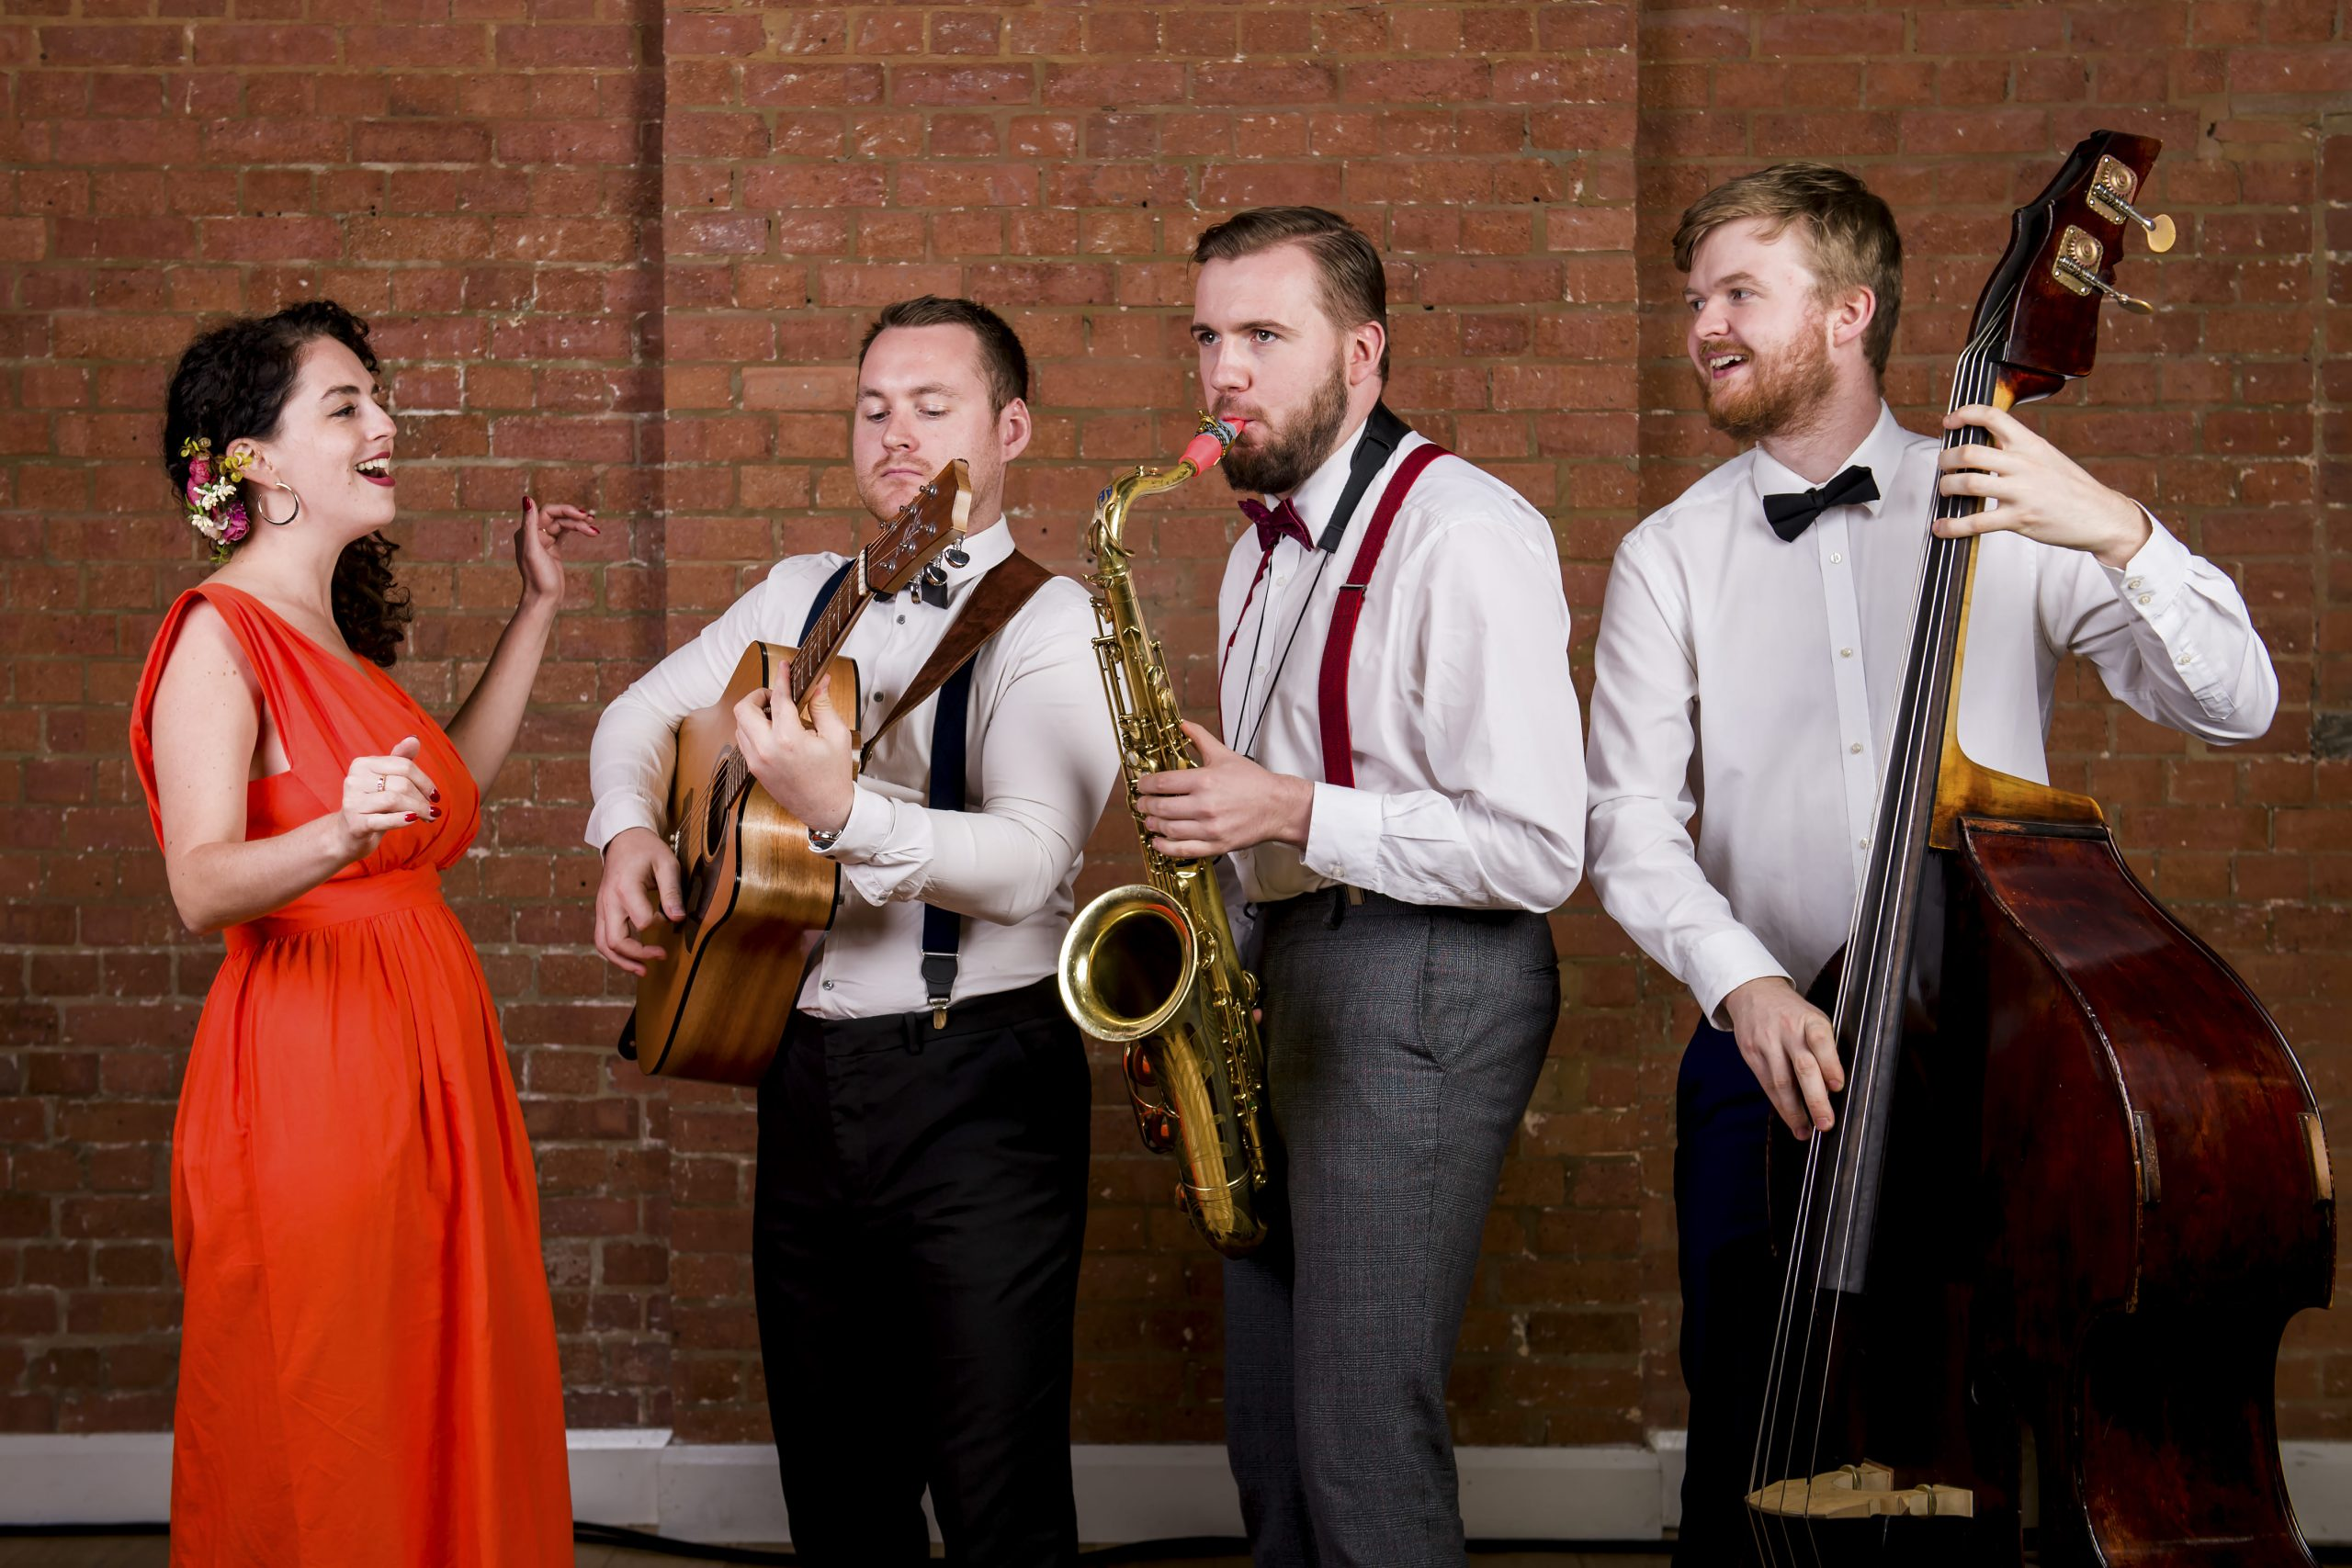 Roaming jazz band photo of guitarist, double bass player, female singer in red dress and saxophonist